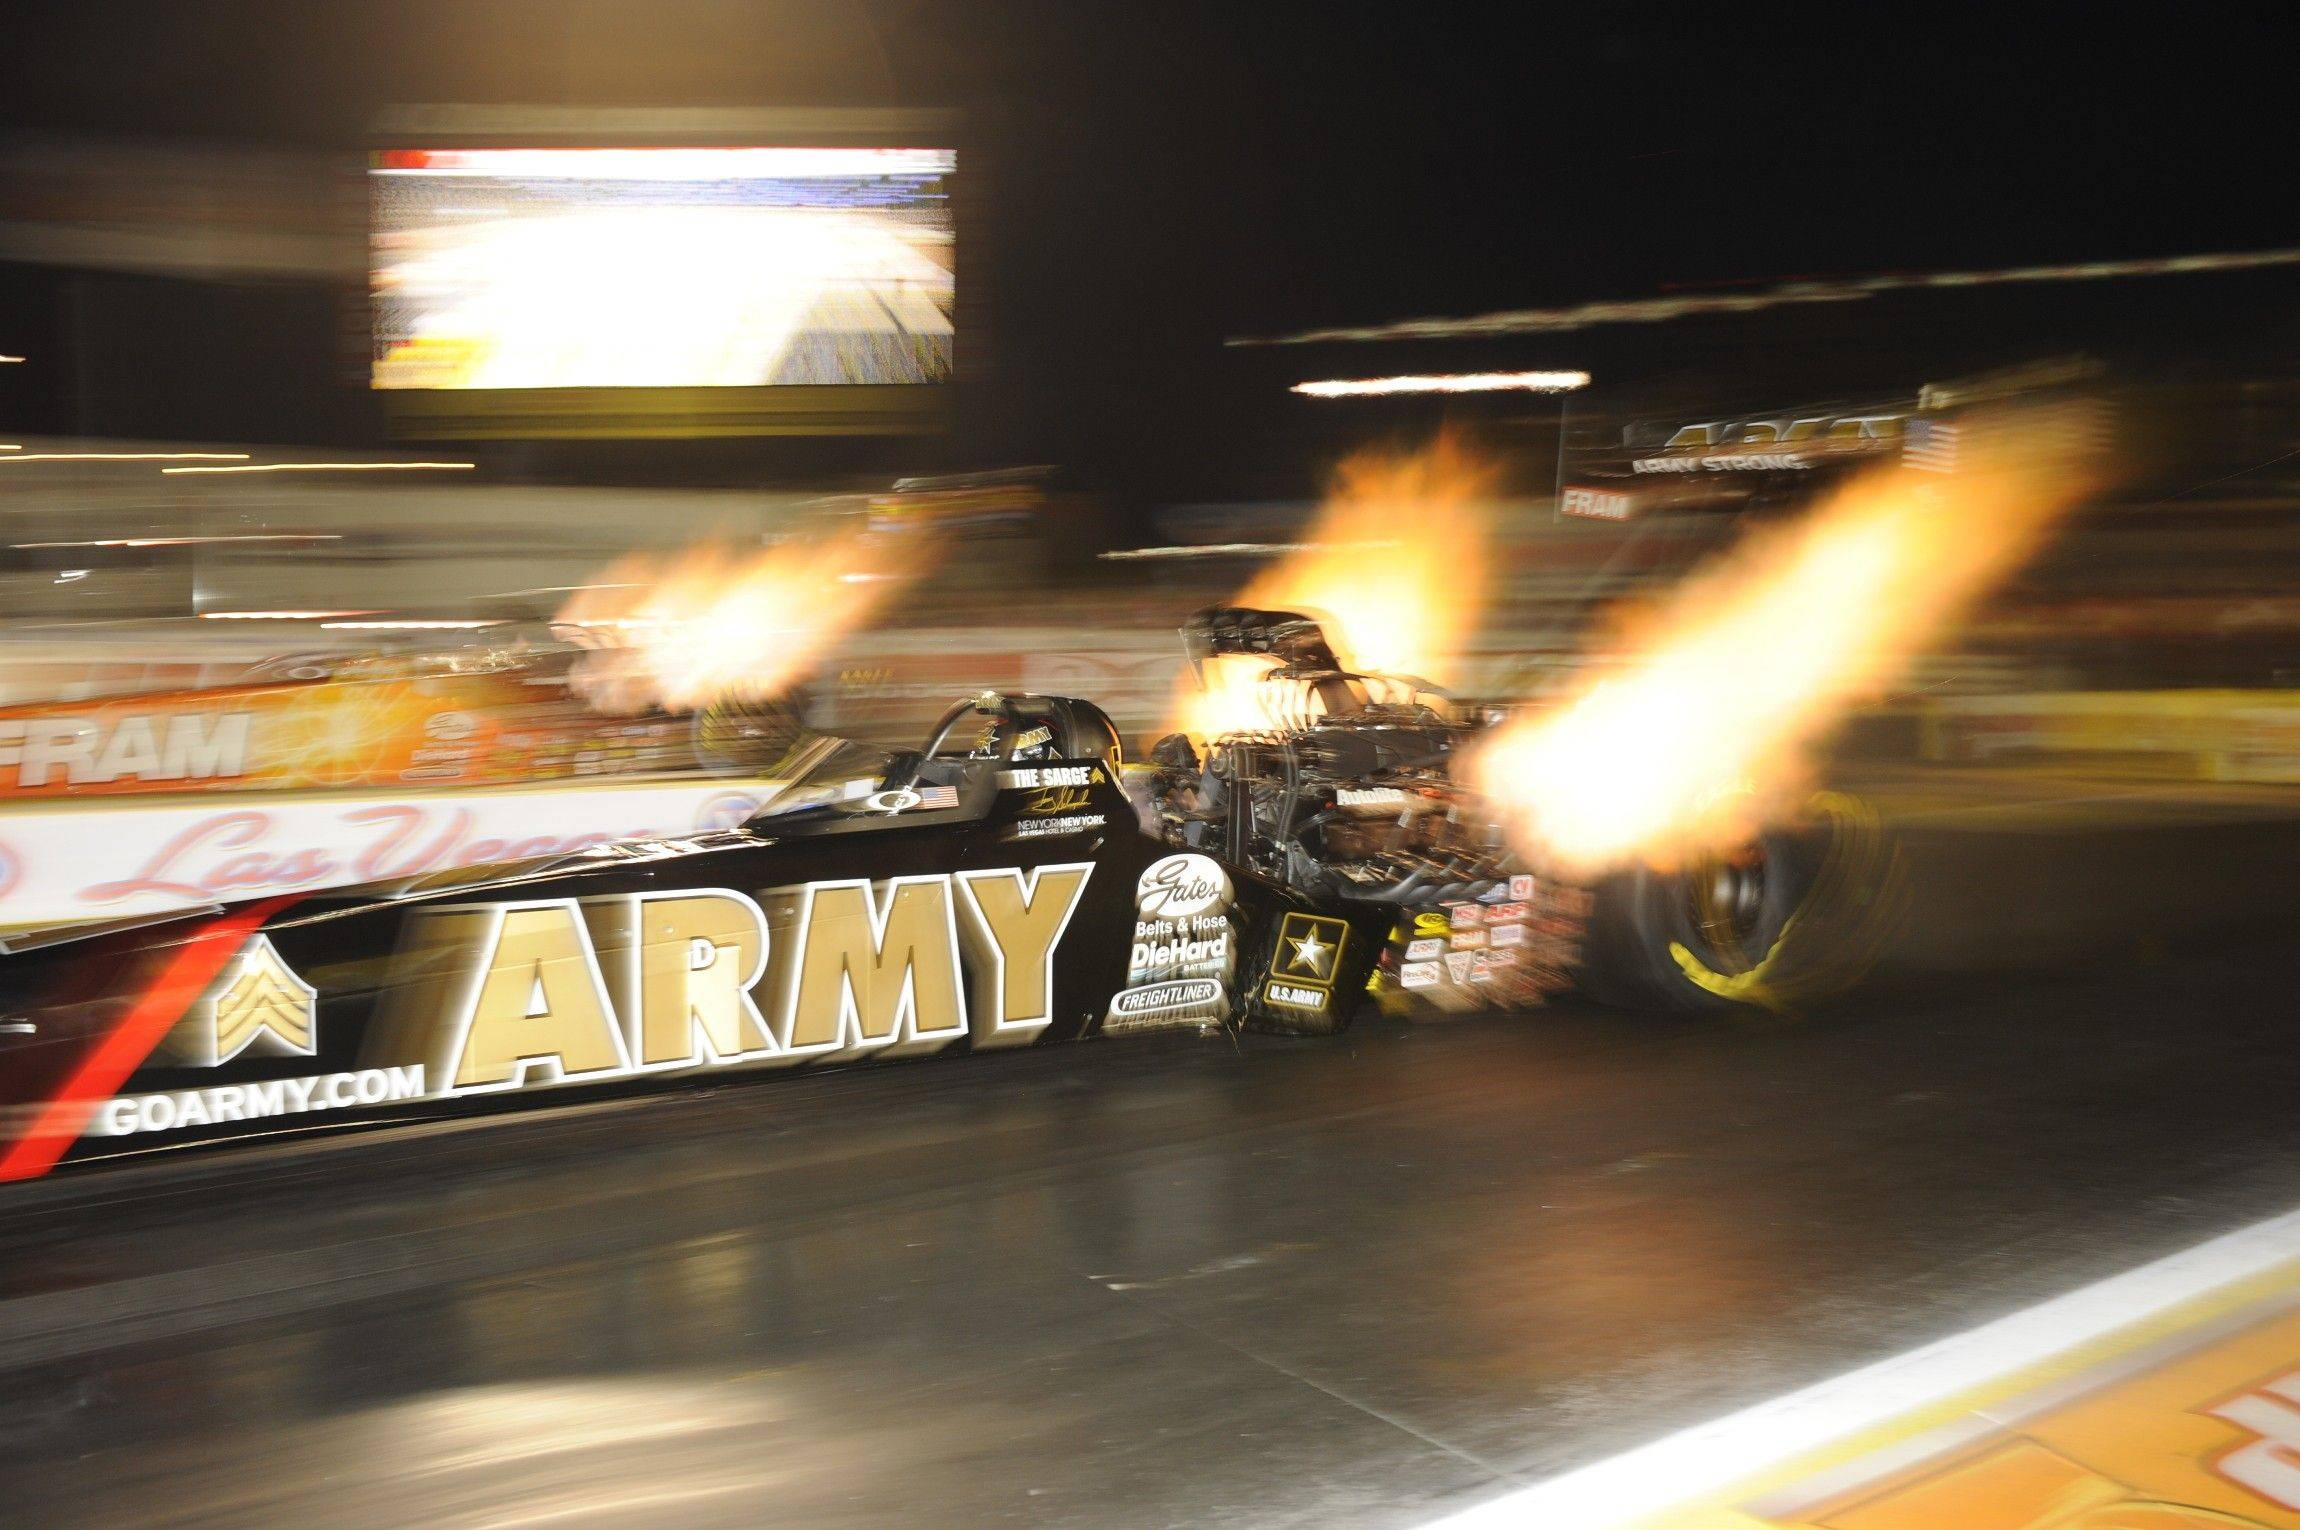 In this photo provided by NHRA, Tony Schumacher sets a track record for speed in his U.S. Army dragster and takes the top spot in Top Fuel at the NHRA Las Vegas Nationals auto race at The Strip at Las Vegas Motor Speedway on Friday, Oct. 29, 2010. (AP Photo/NHRA, Jerry Foss) ** NO SALES **